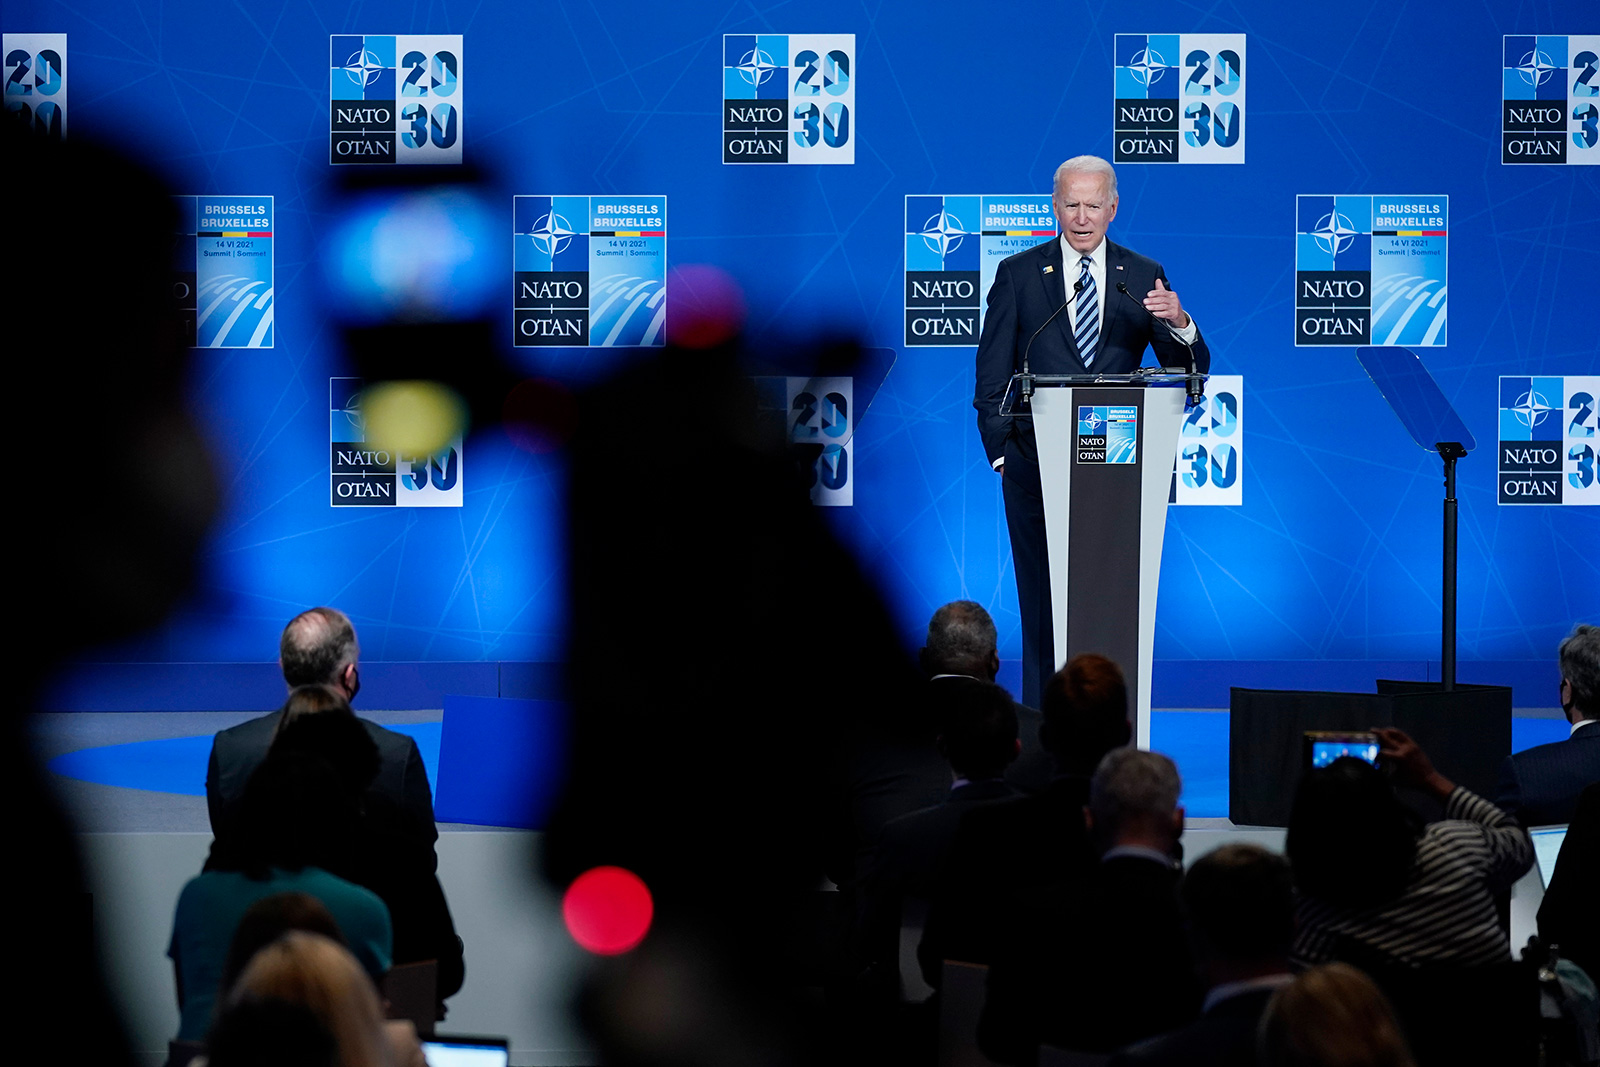 President Joe Biden speaks during a news conference at the NATO summit at NATO headquarters in Brussels, Monday, June 14.